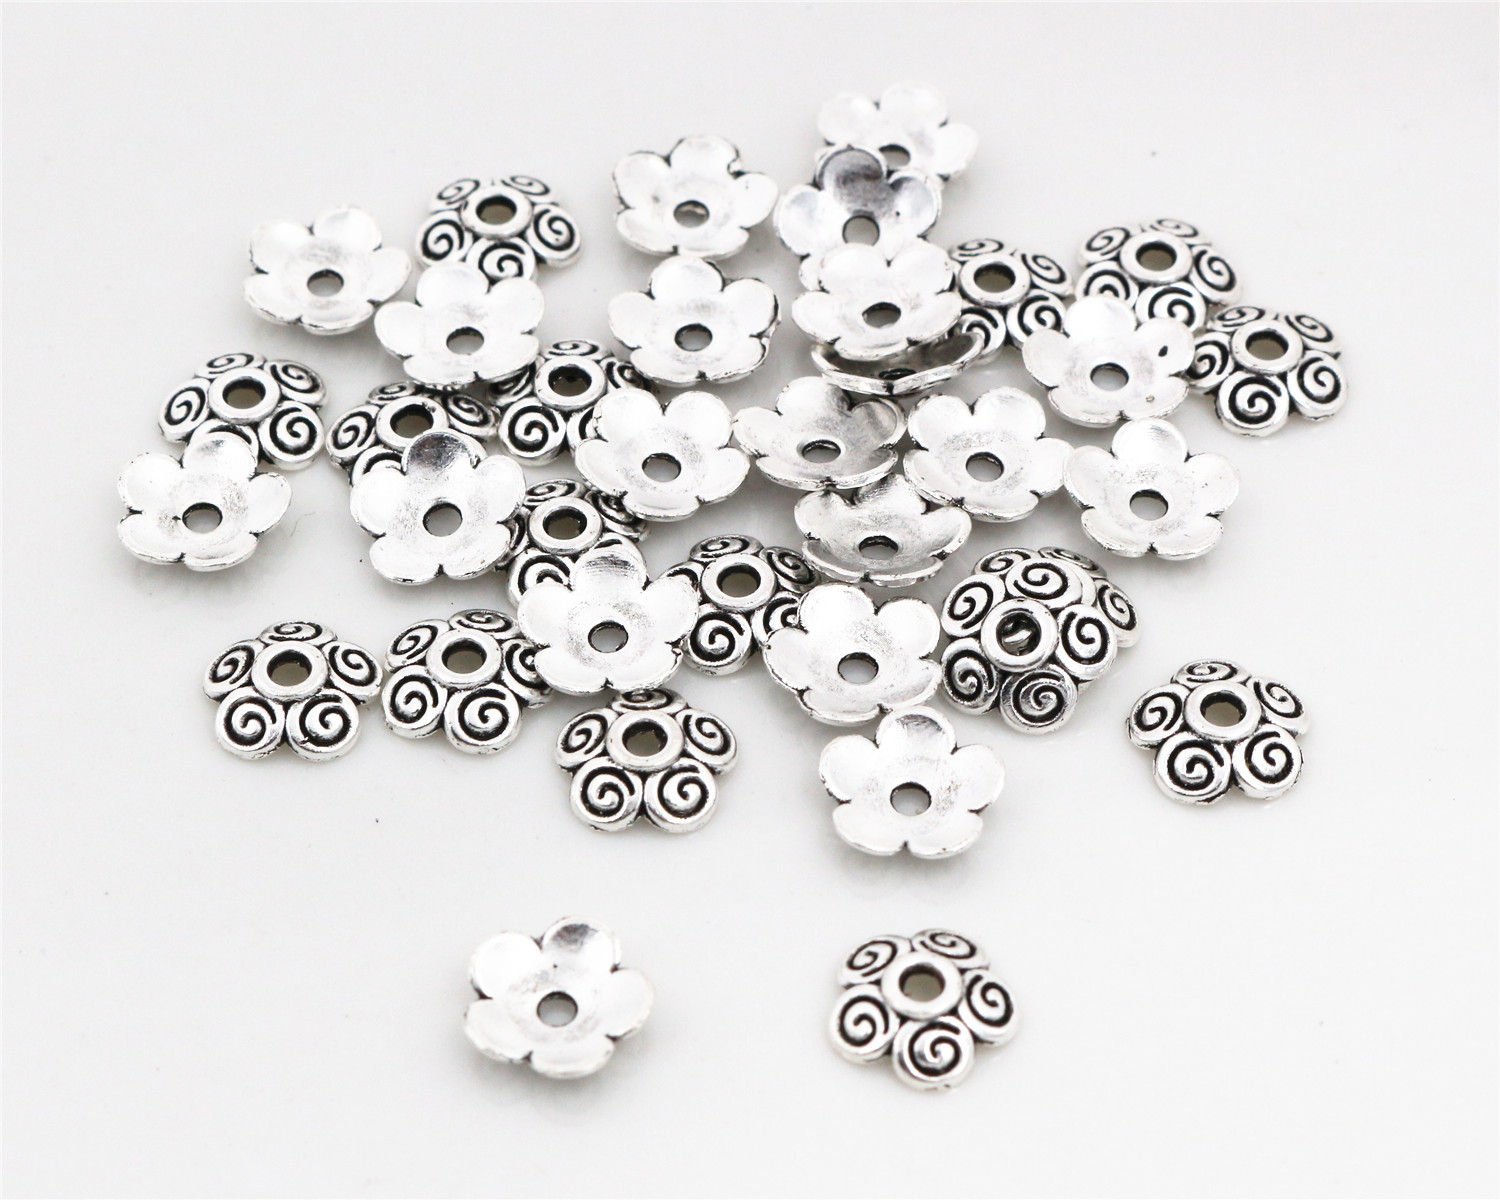 12mm 50pcs Beads Cap Antique Silver Color Flower Shape Bead End Caps Findings For Women Jewelry Making End Caps-Q4-17